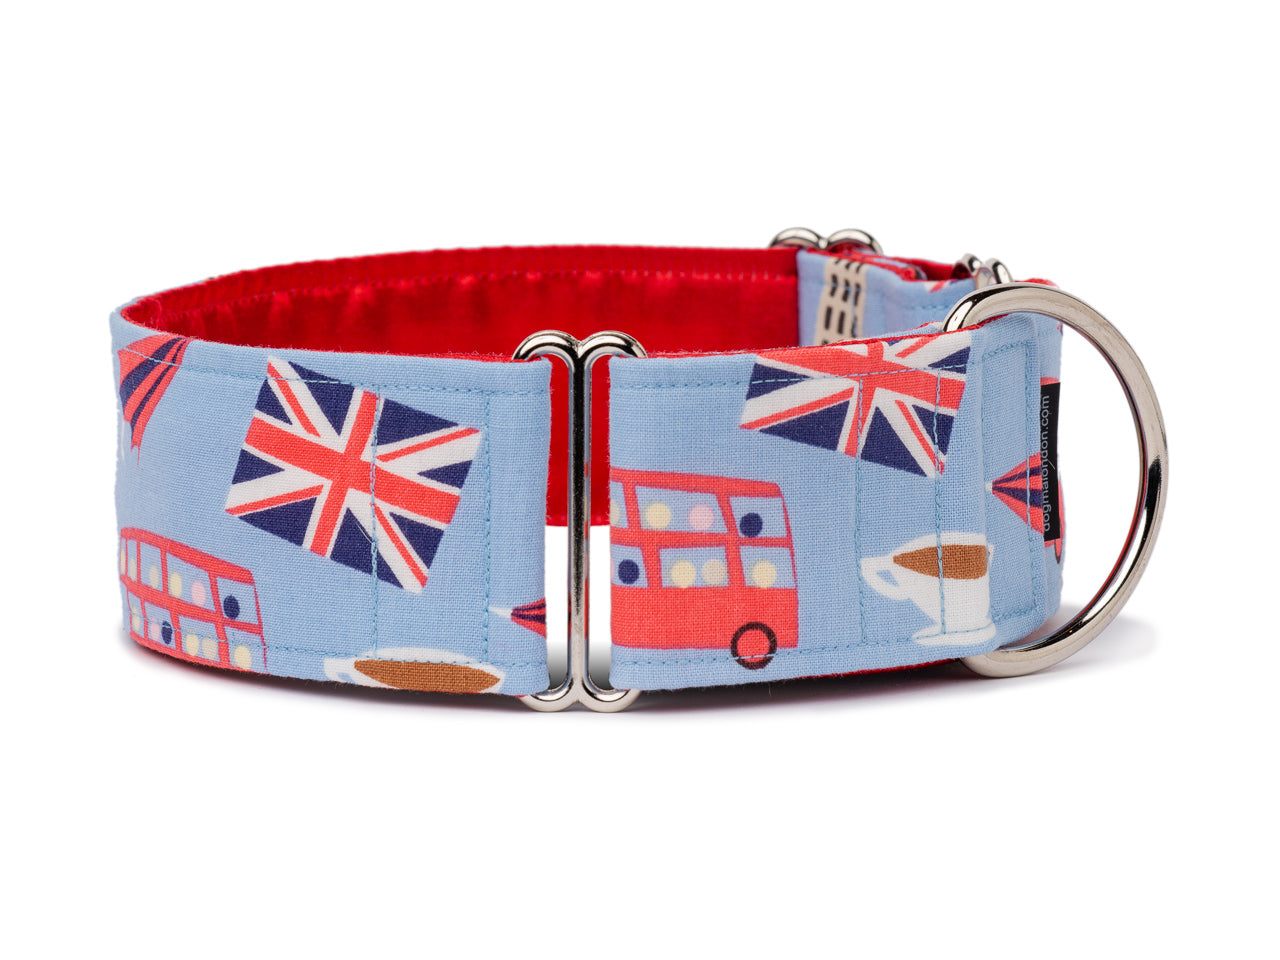 Your pooch will be chuffed to bits with this pretty blue collar splashed with iconic British images like the Union Jack, Big Ben, and a double-decker bus!